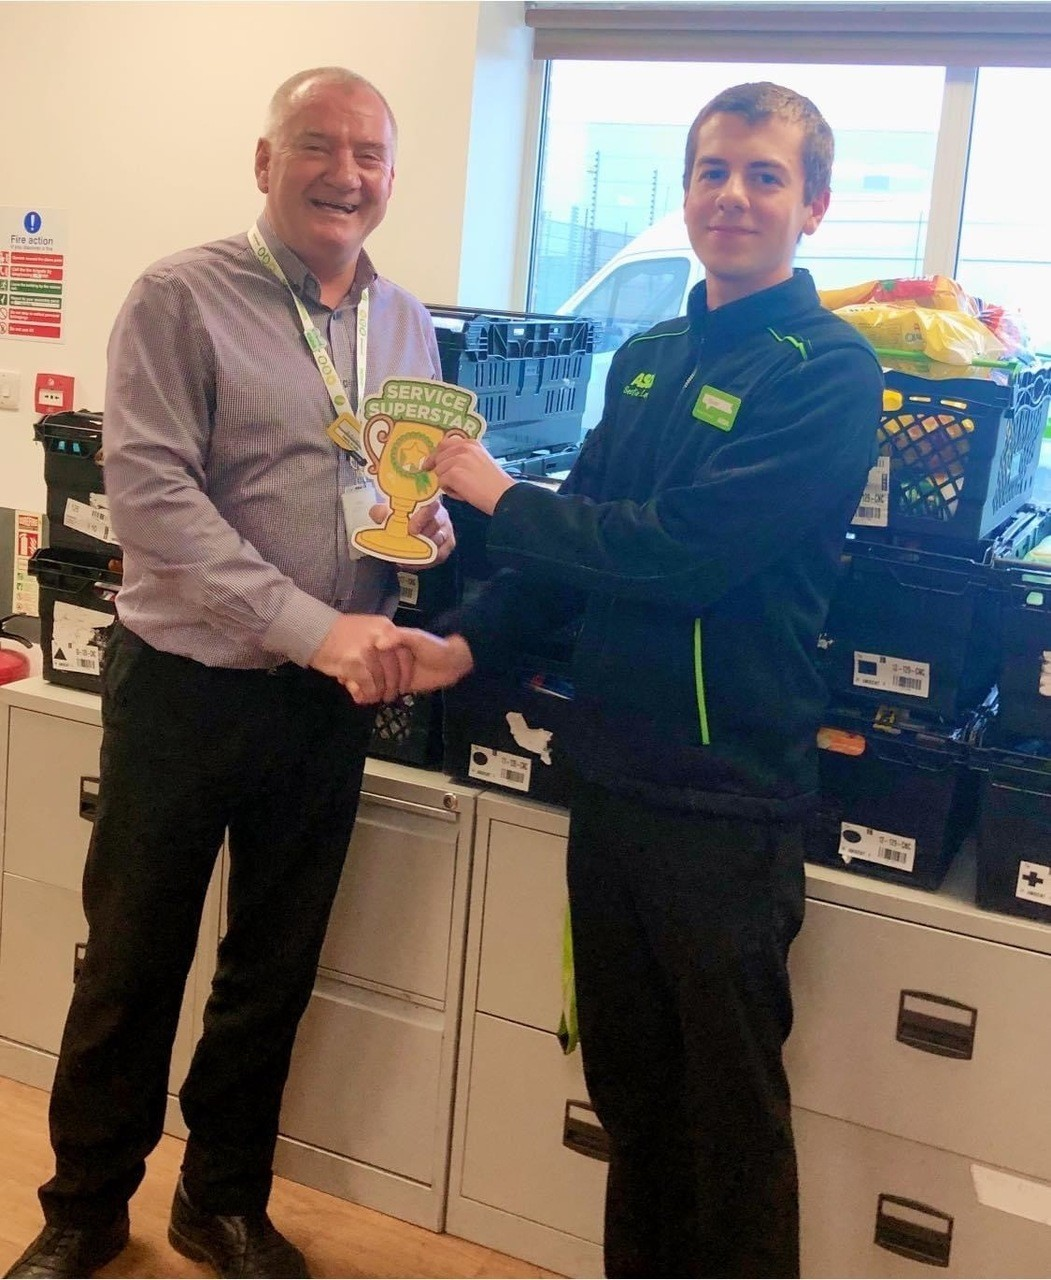 Superstar Sean goes out of his way to help customers at Asda Downpatrick | Asda Downpatrick